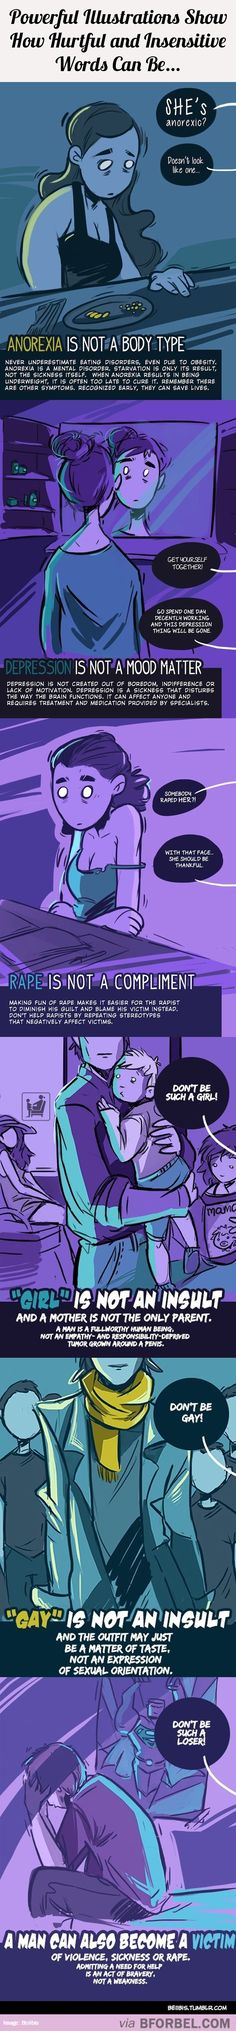 6 Powerful Illustrations Show How Hurtful And Insensitive Words Can Be…